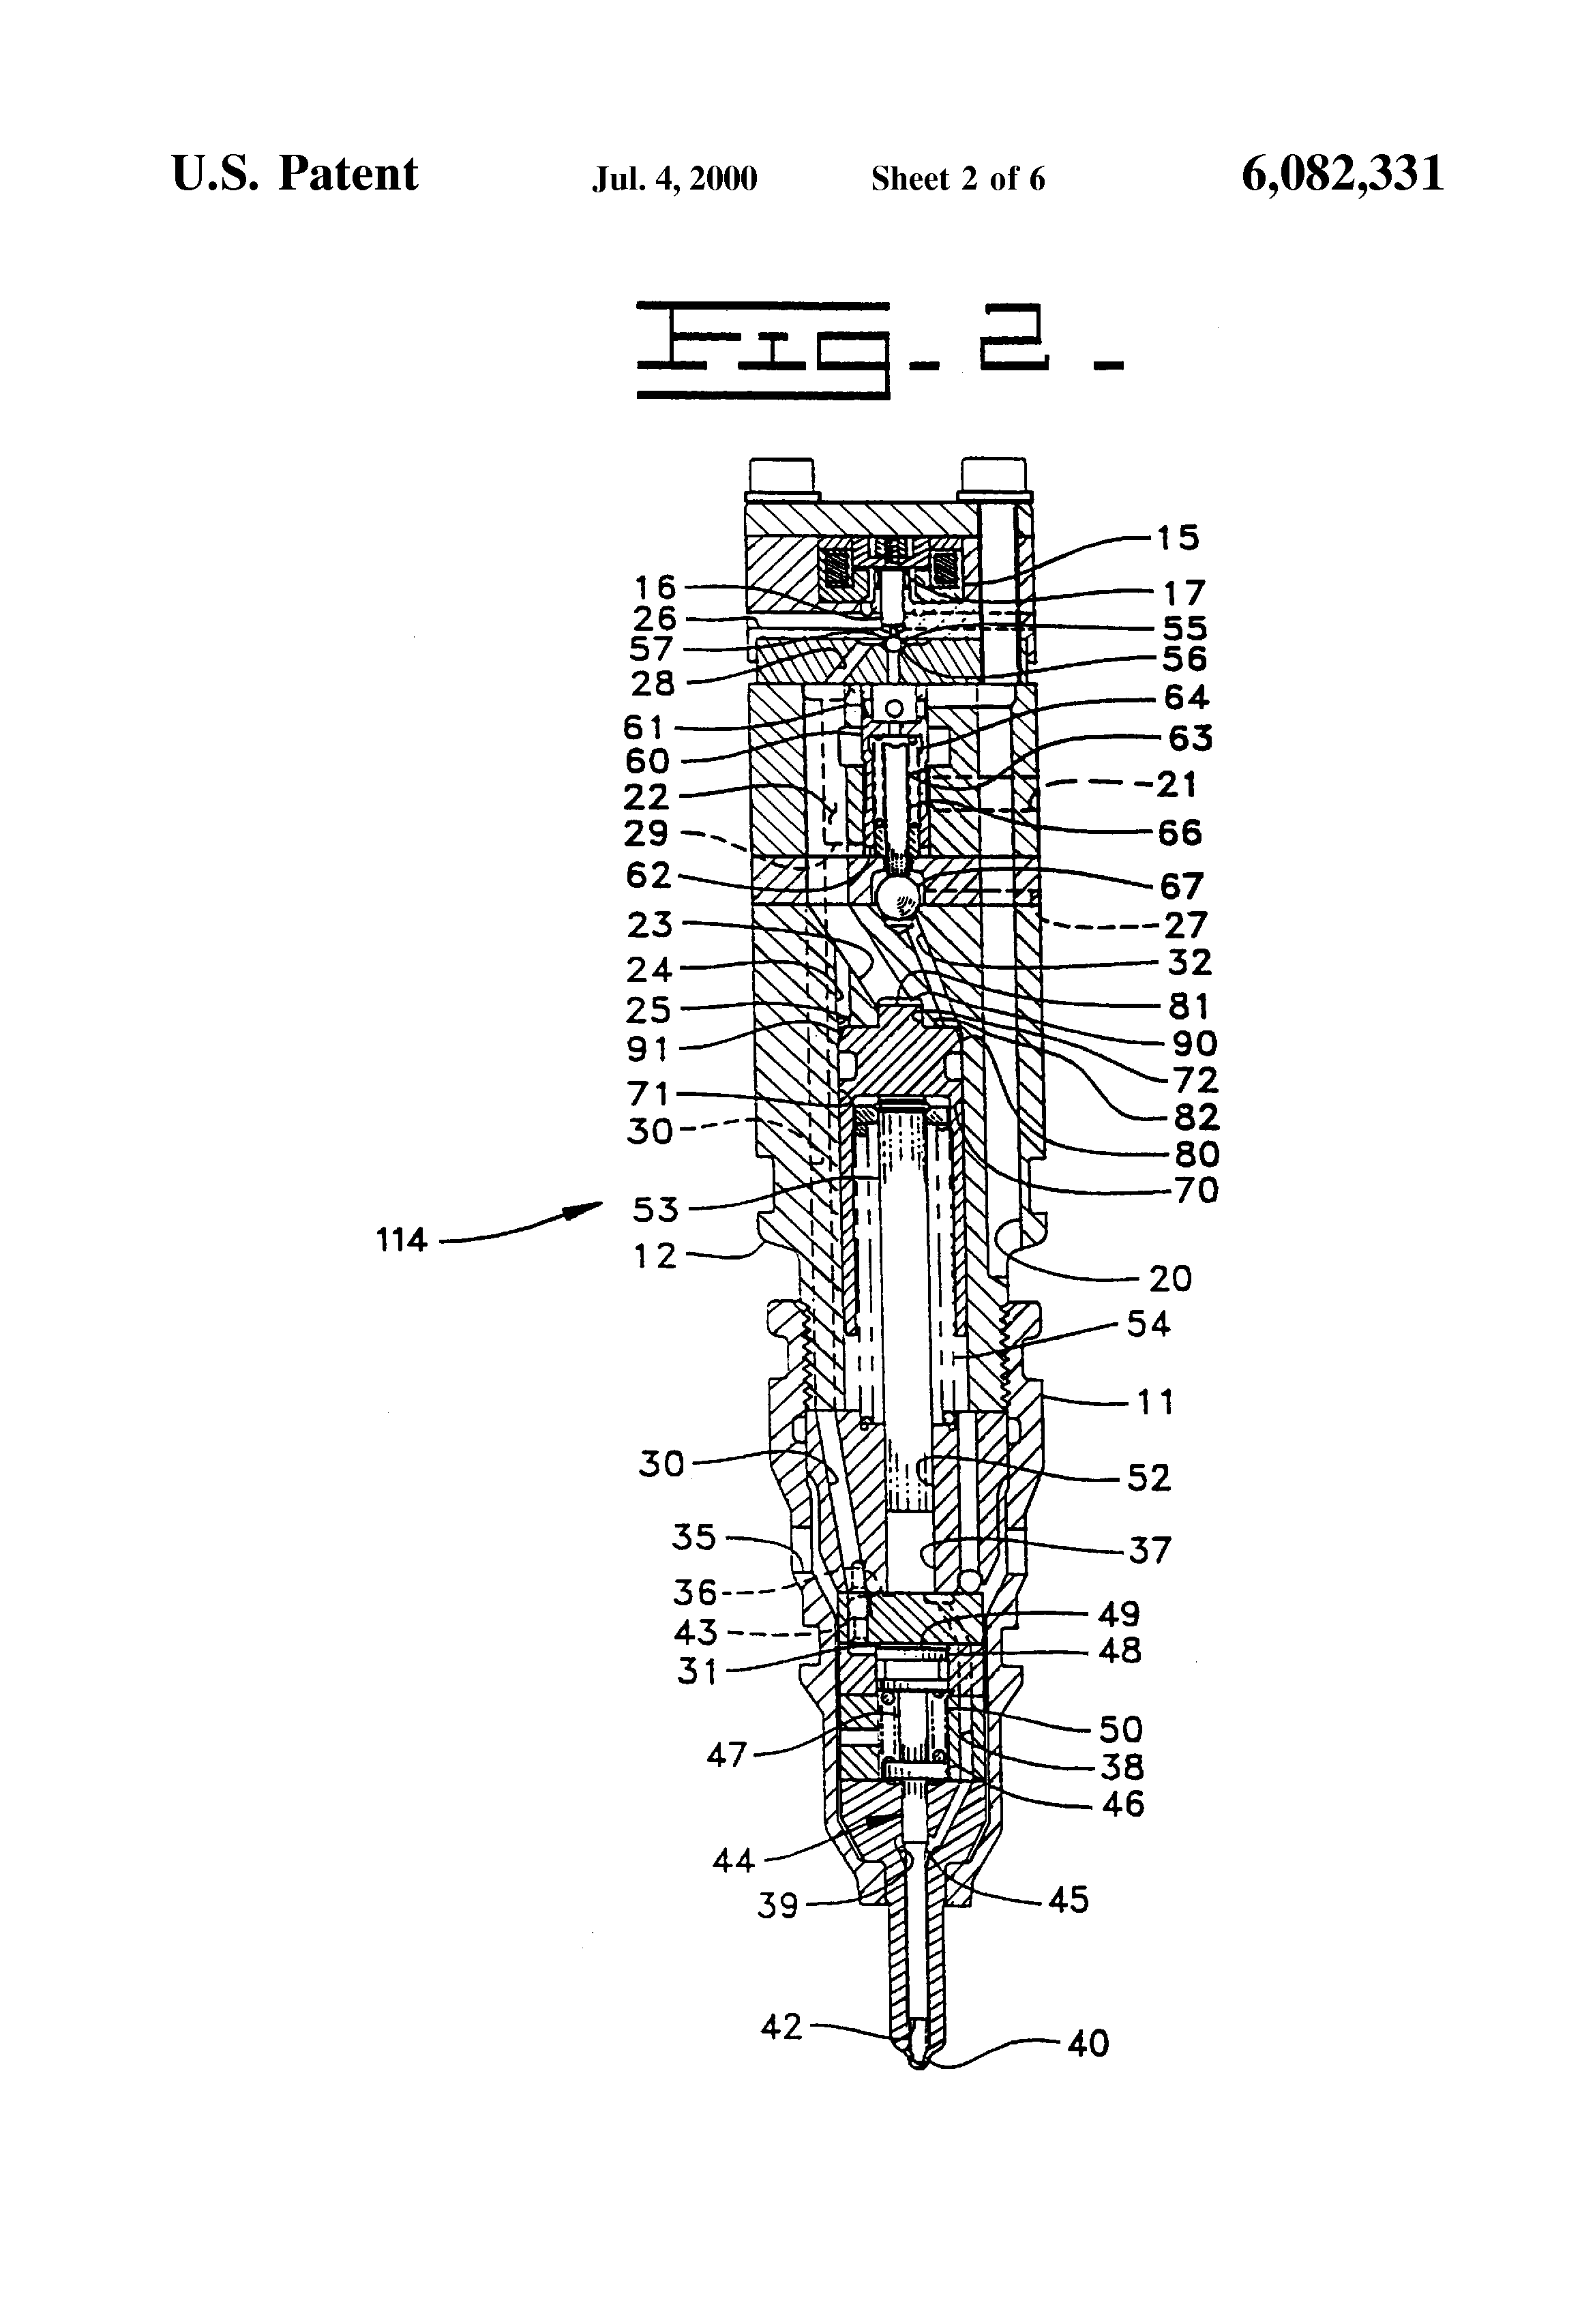 Perkins 1300 Series Ecm Wiring Diagram 38 Images Diesel Engine Us6082331 2 Patent Electronic Control And Method For Consistently